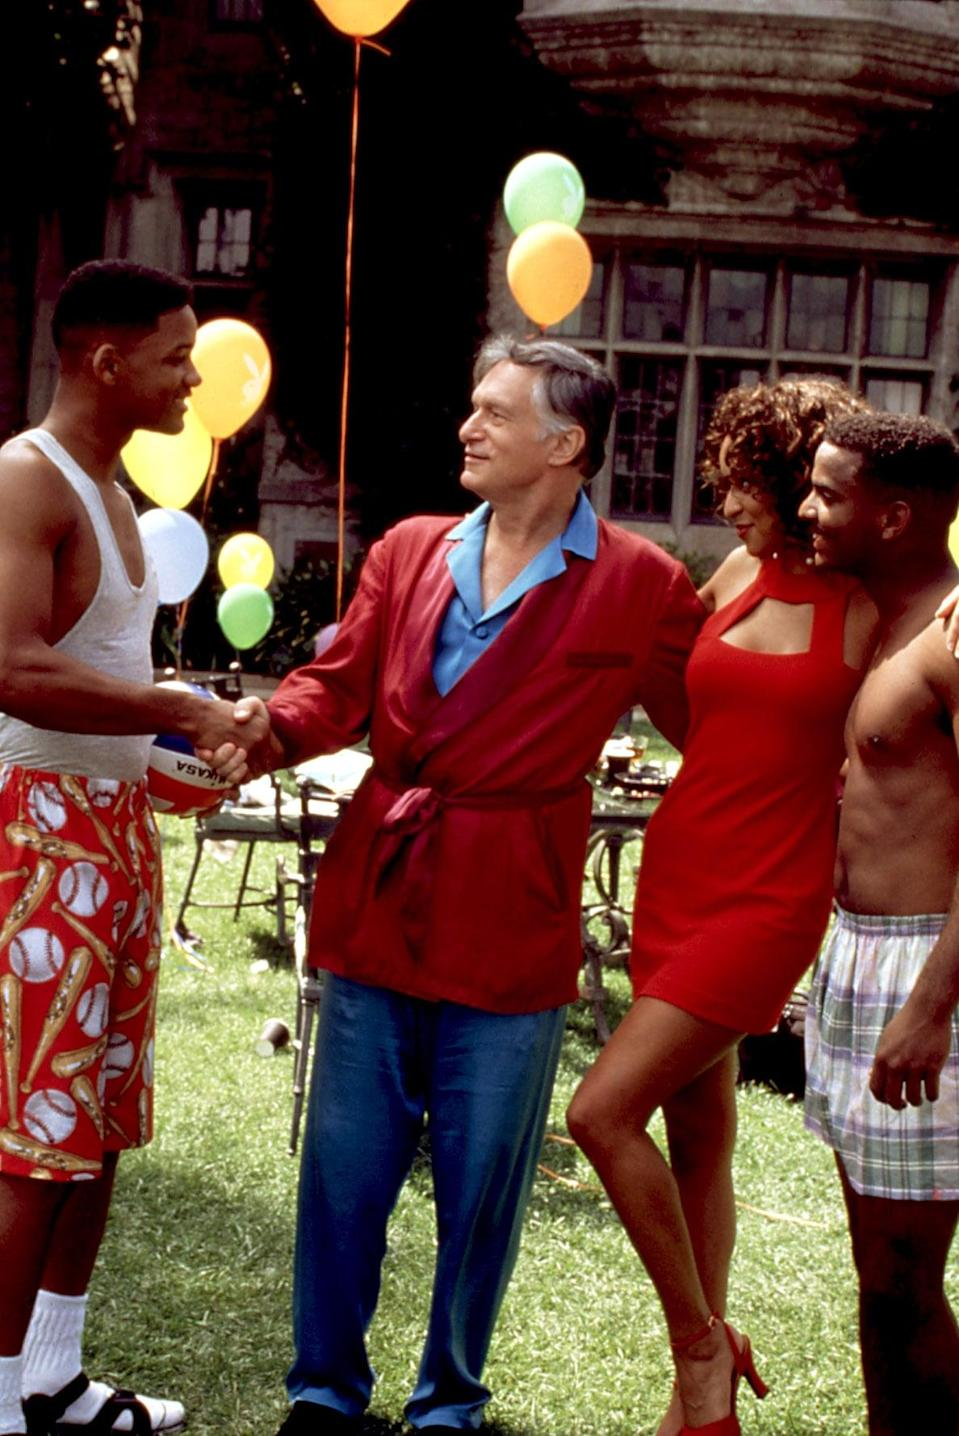 <p>Even his swim trunks had a preppy flair.</p>